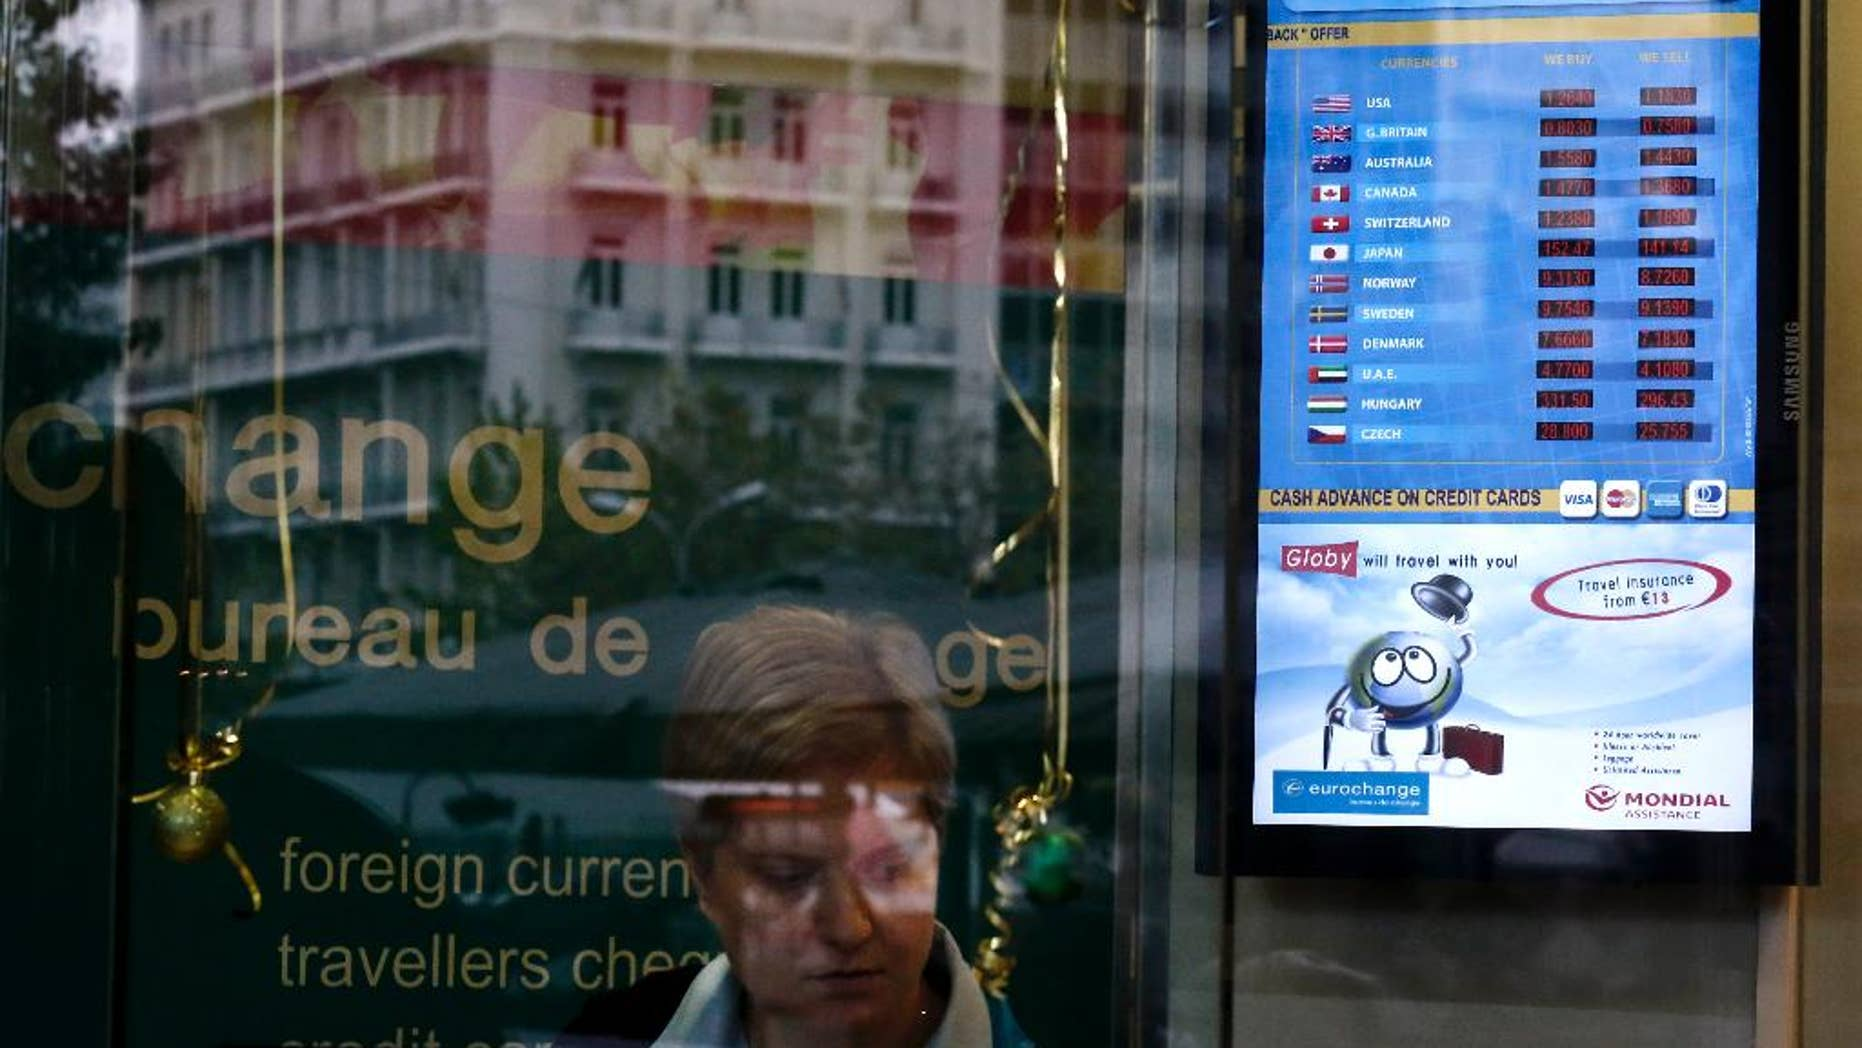 The exchange rate of the US Dollar and the Euro, at top, is displayed in the window of a currency exchange office in Athens, on Monday, Jan. 5, 2015. The euro sank to a nine-year low Monday as new doubts surfaced about Greece's commitment to the common currency bloc. European stocks mostly rose while Asian markets were mixed. (AP Photo/Petros Giannakouris)